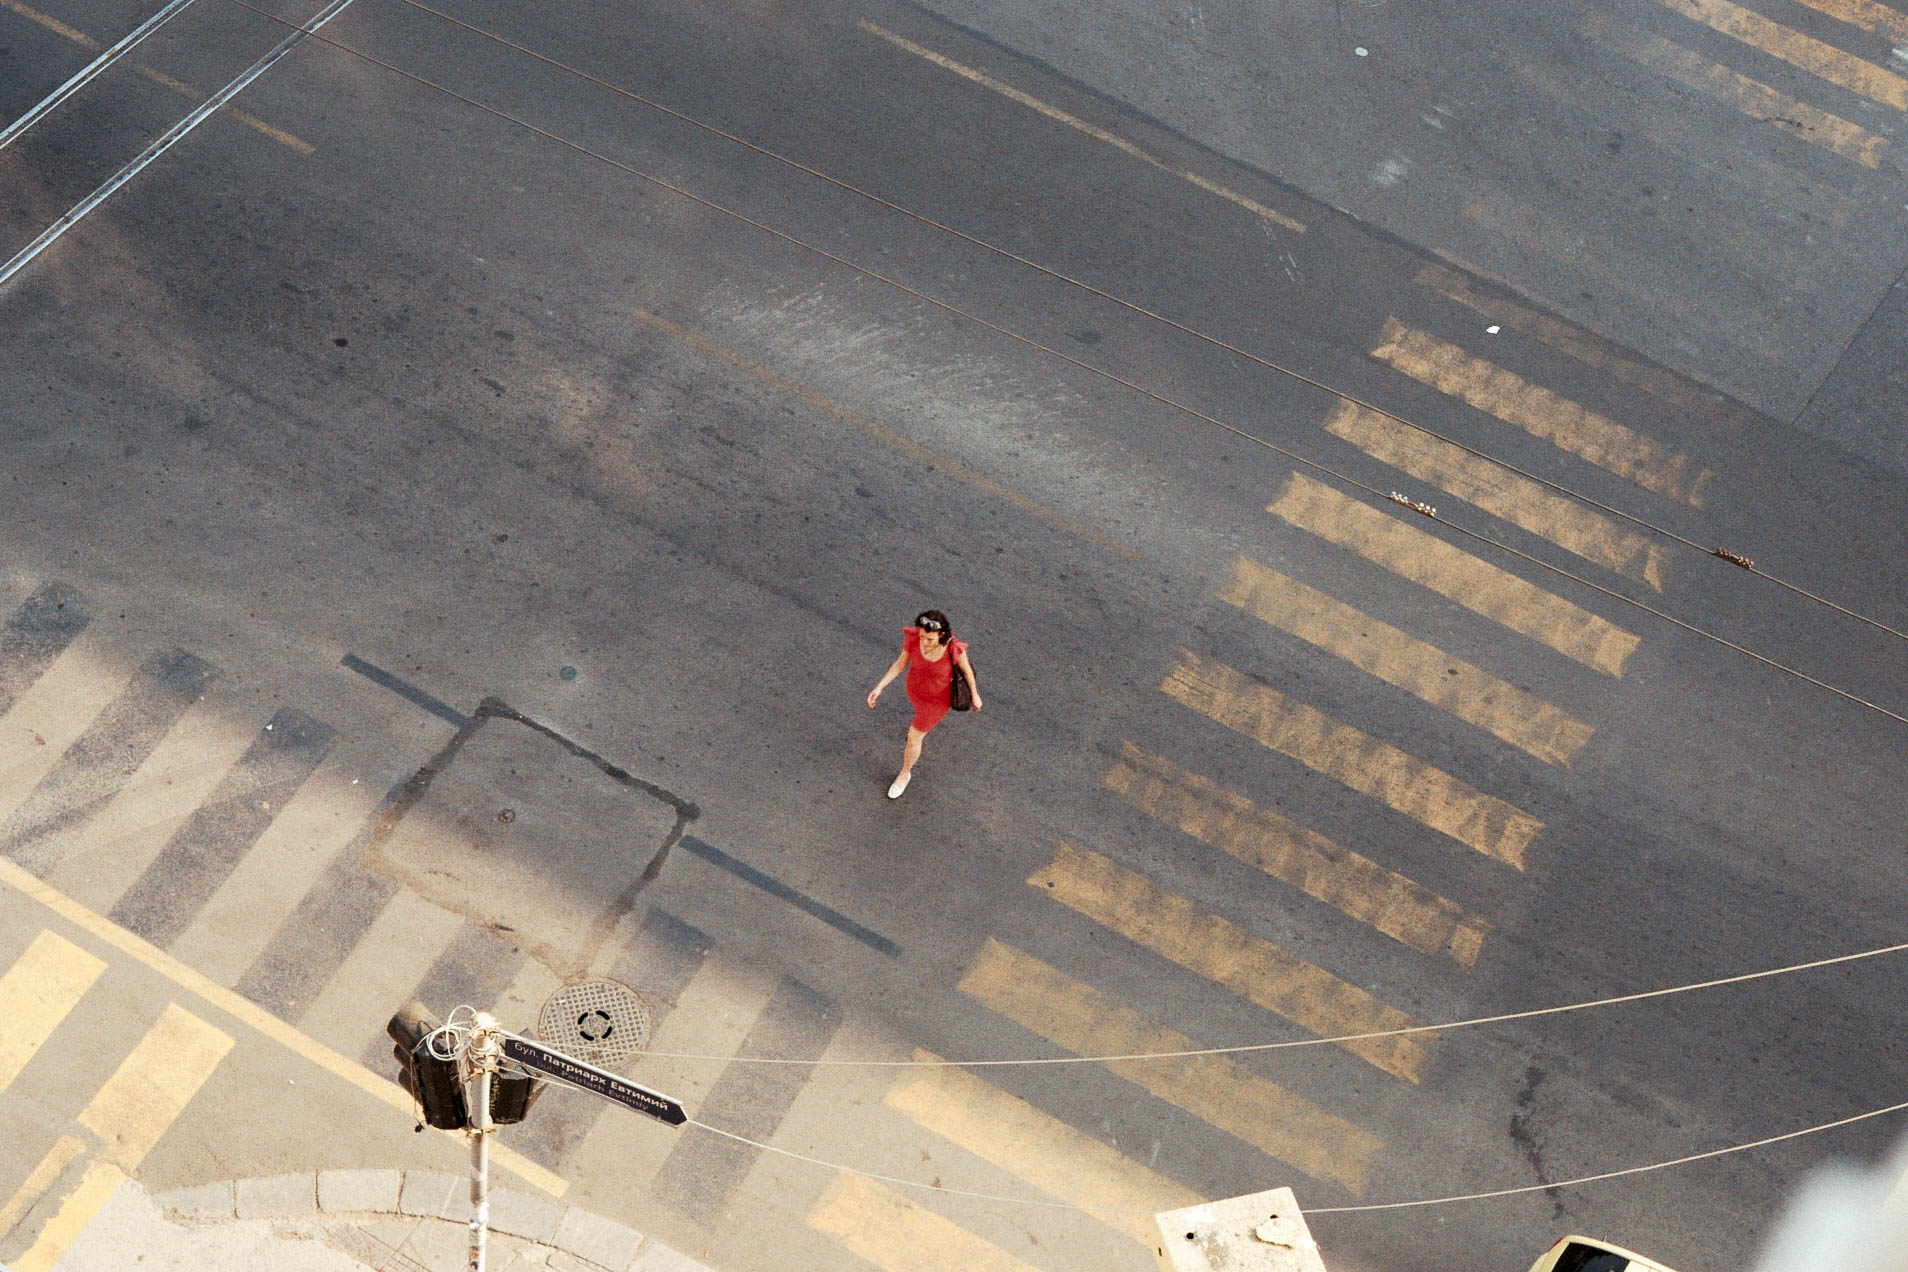 A lady crossing the street in a red dress